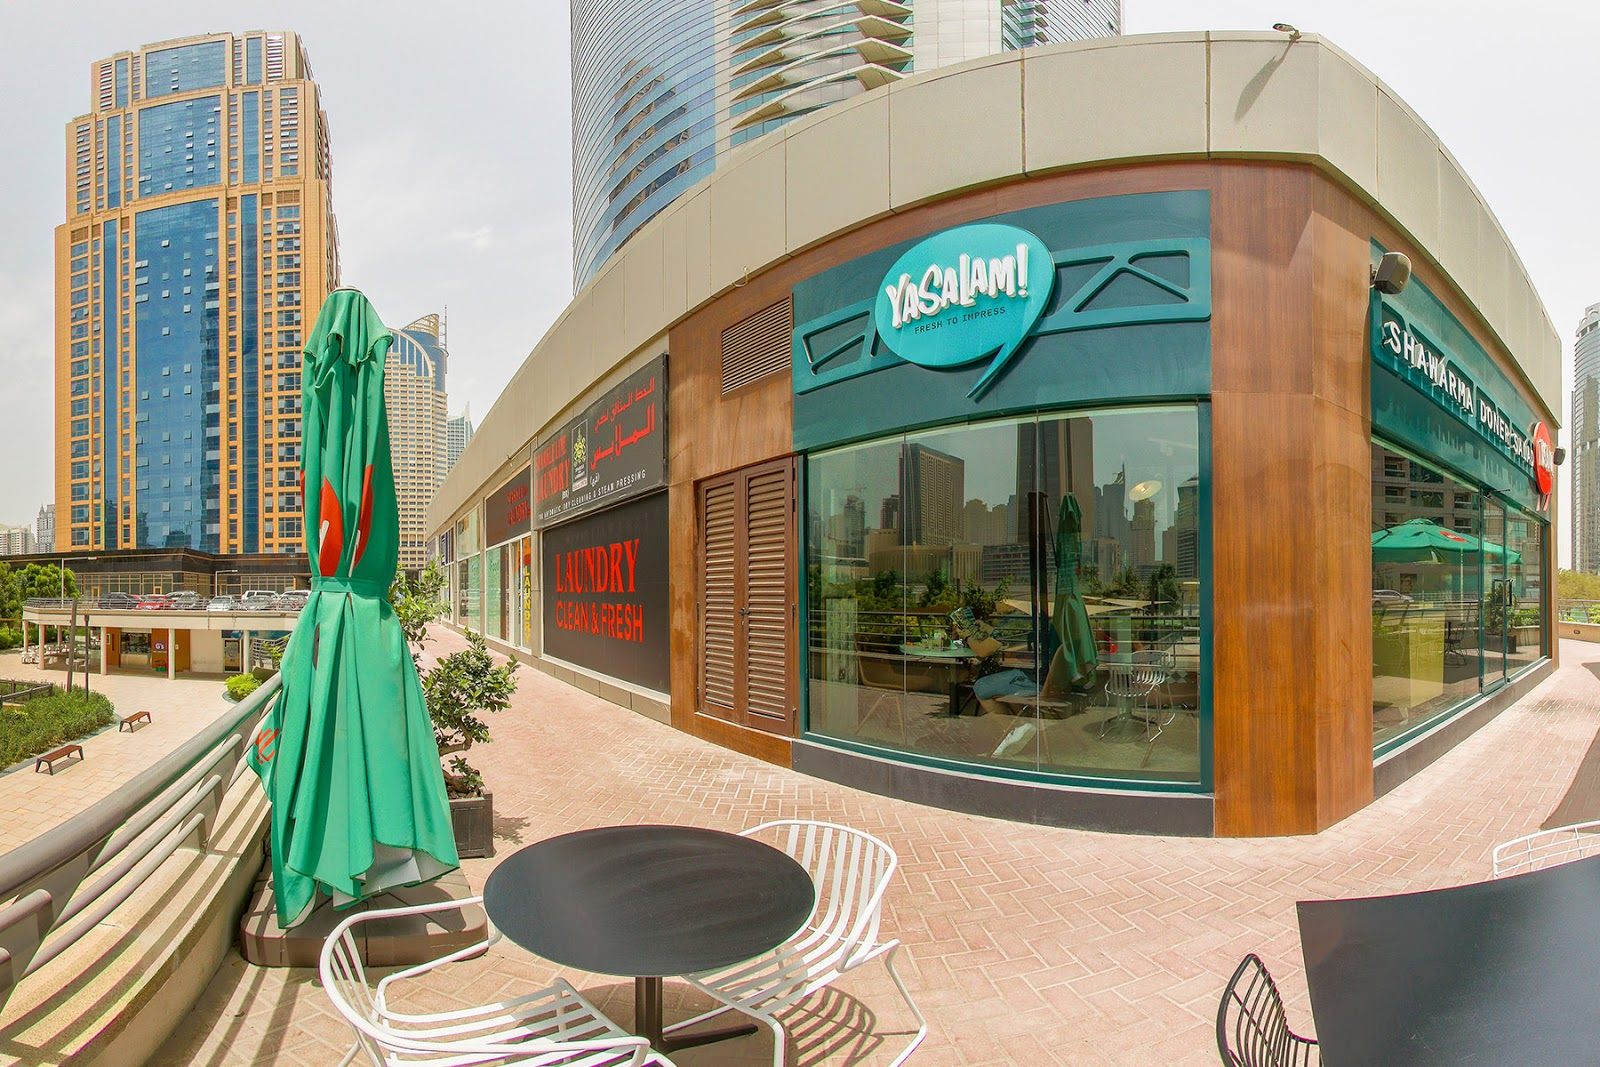 shawarma and doner wraps in JLT